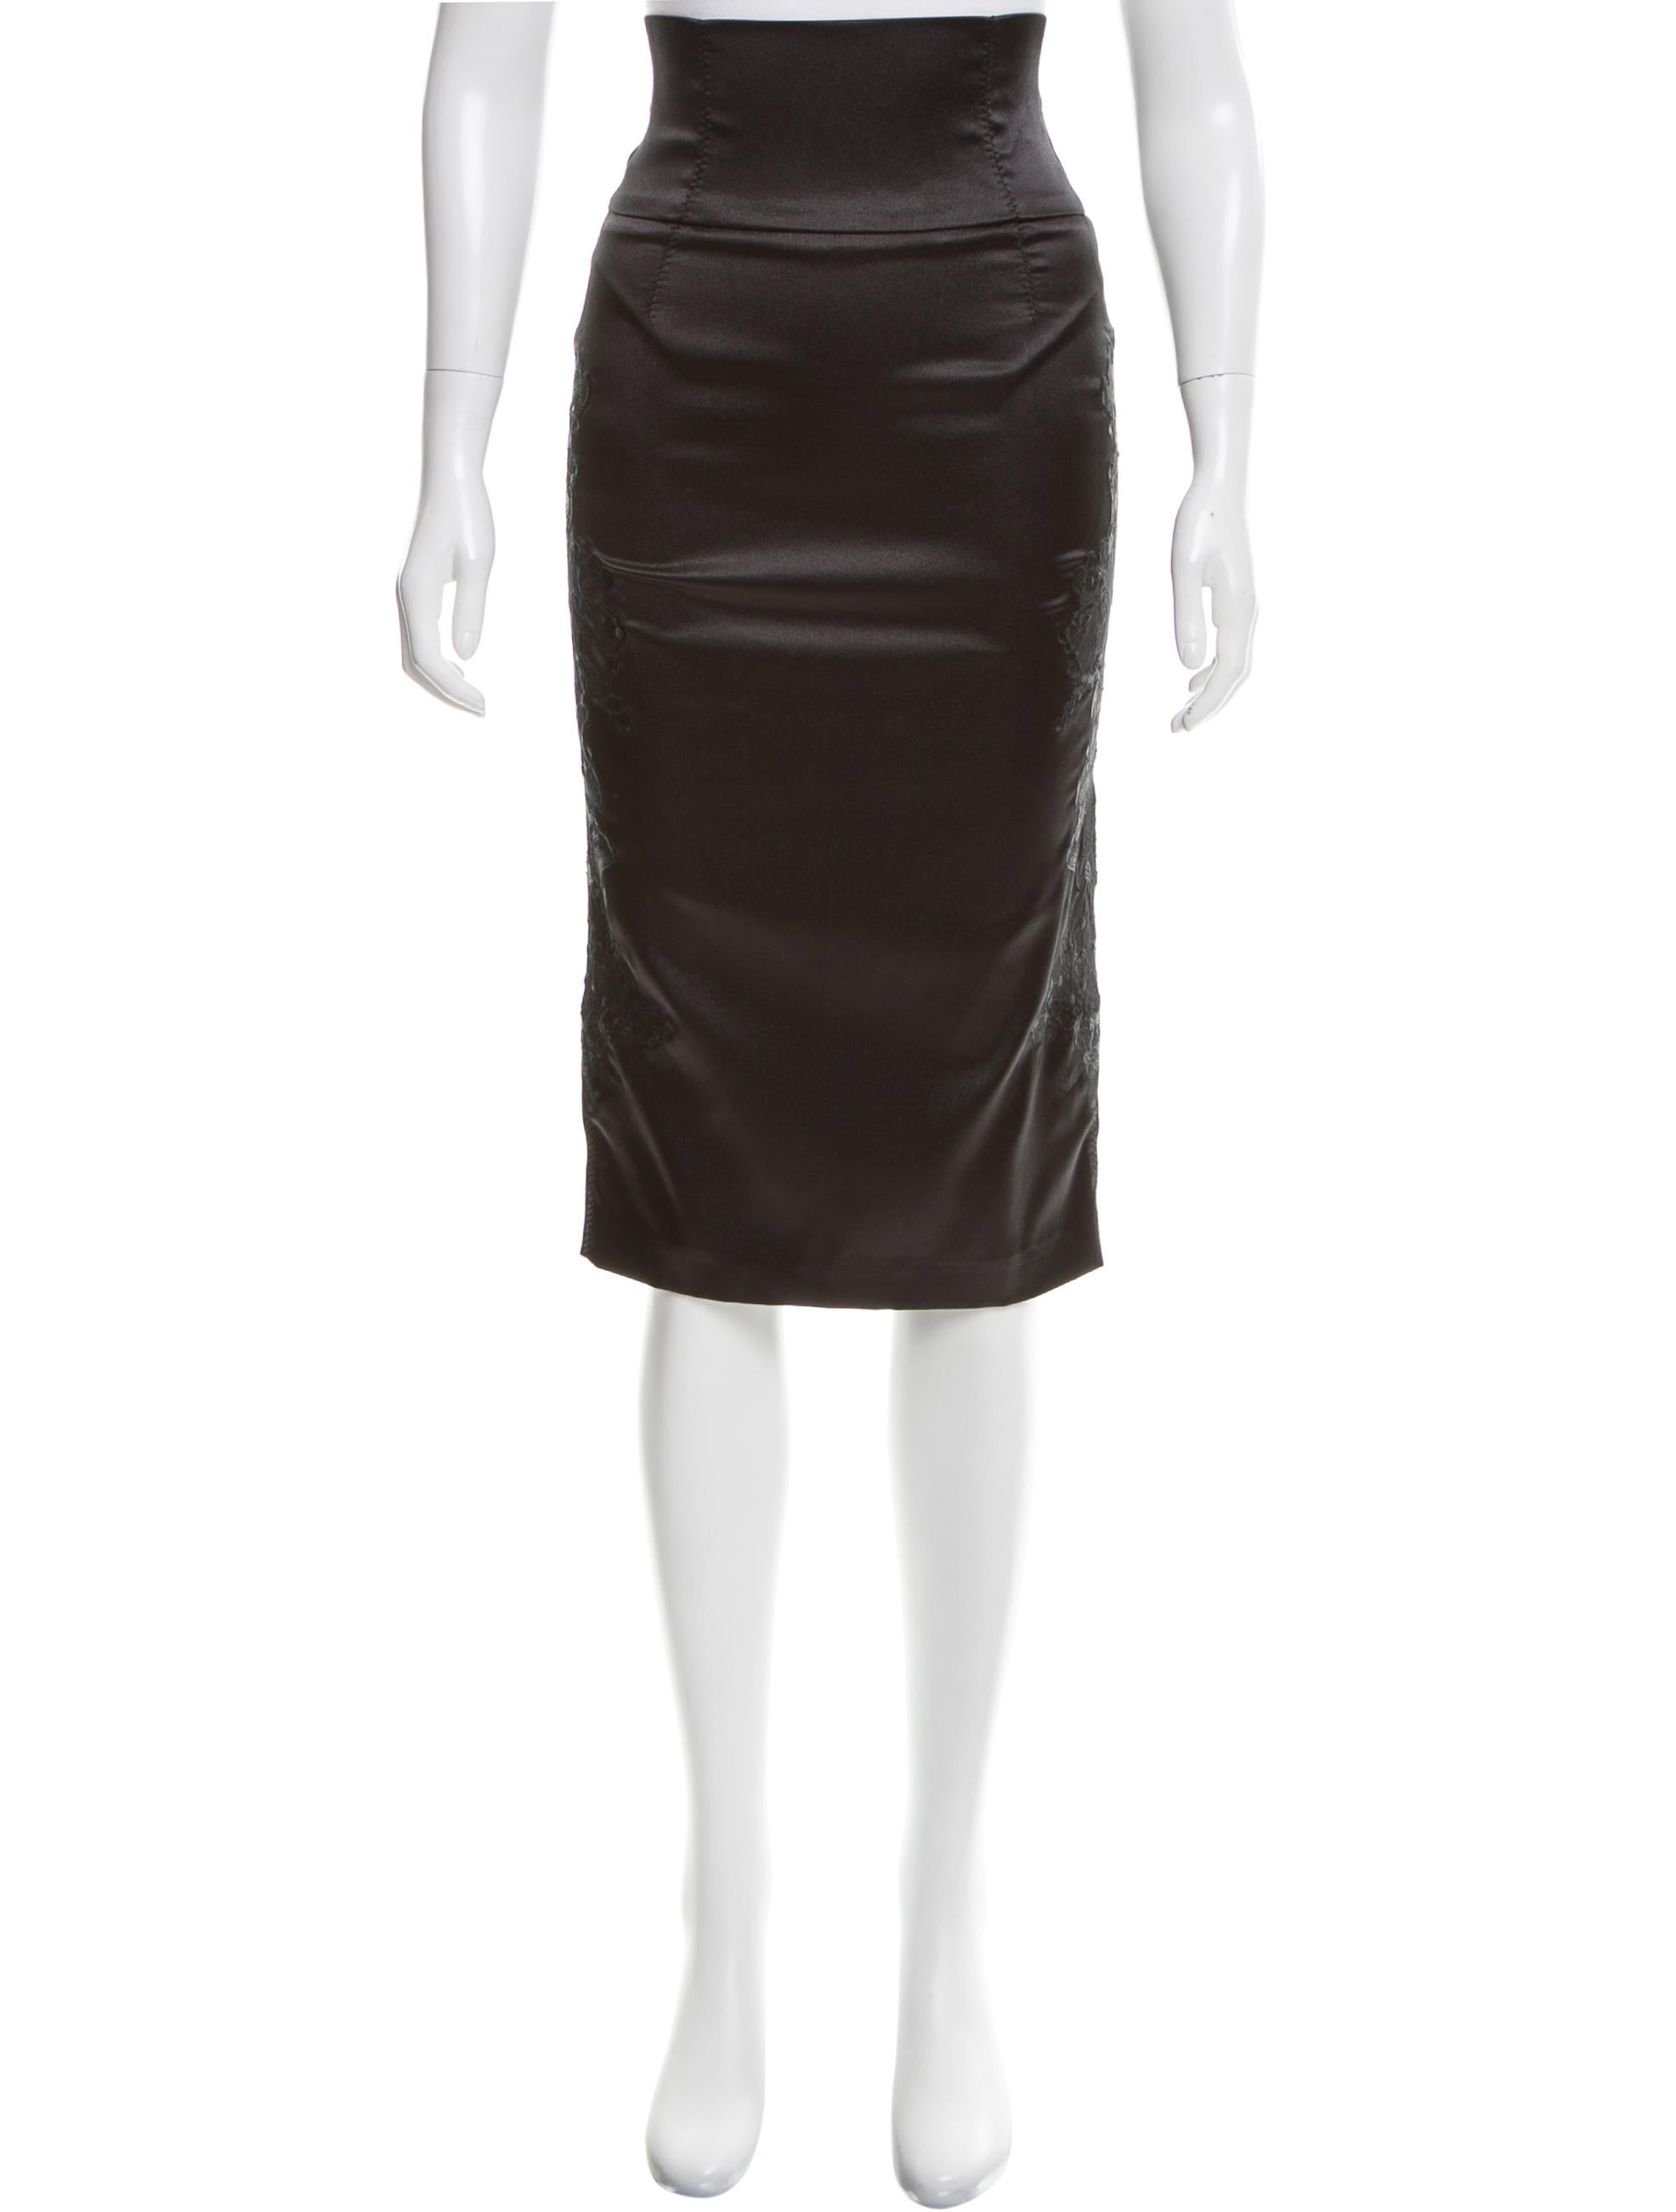 d g embroidered pencil skirt clothing wdg34179 the